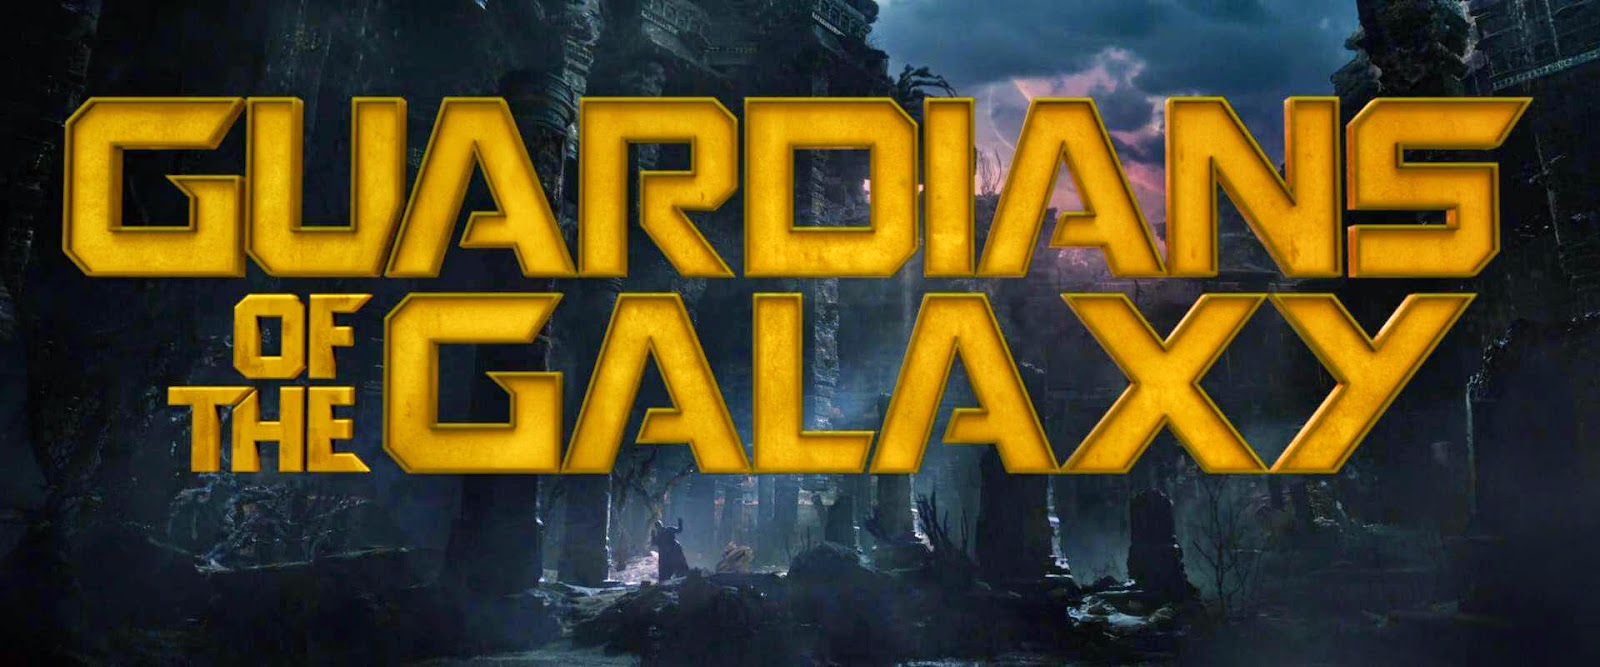 Guardians of the Galaxy (2014) S2 s Guardians of the Galaxy (2014)